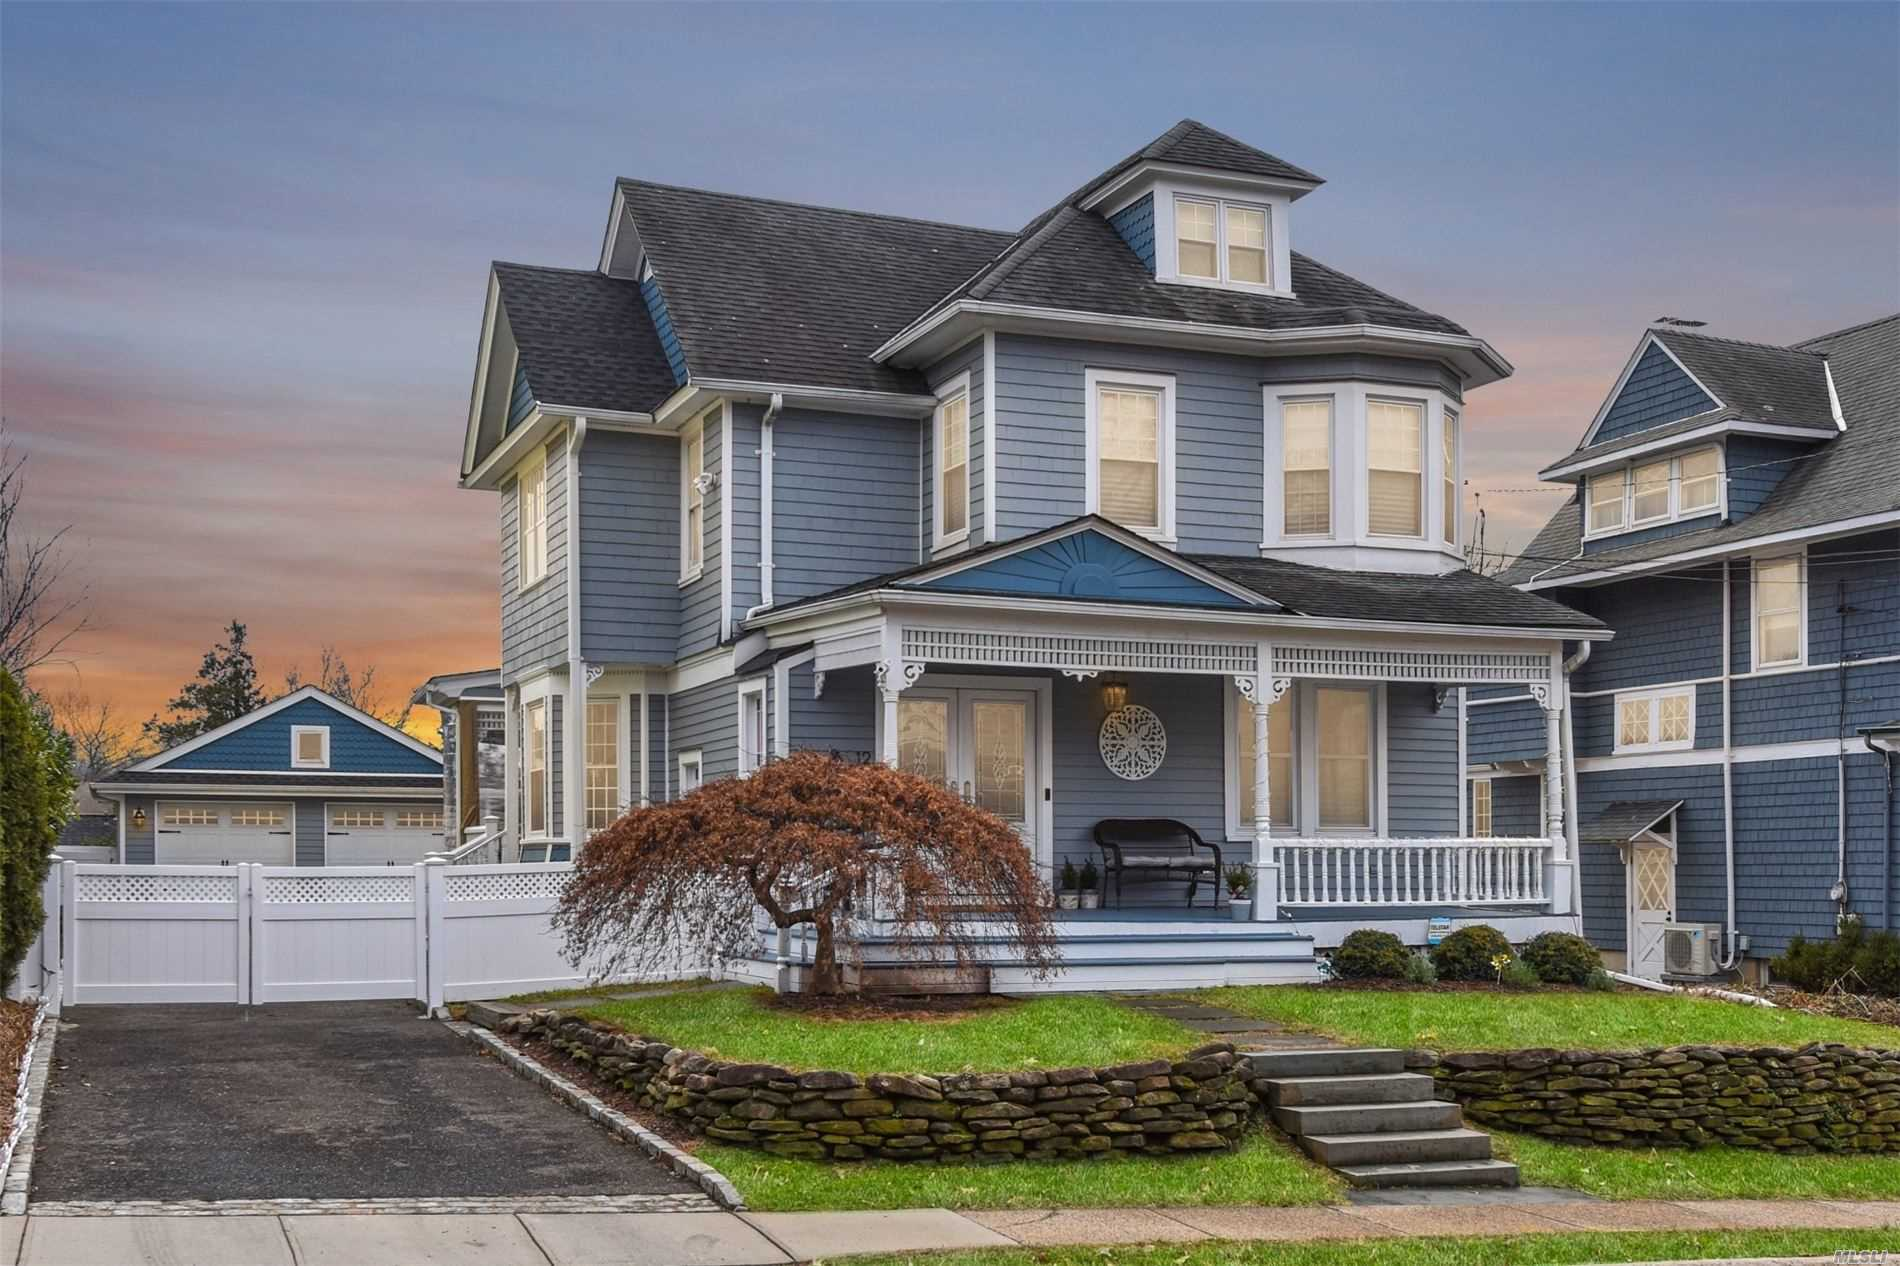 Positioned to capture a distant water view, this fabulous home with front and back porches, stunning finishes, open floor plan, generous bedrooms and more will truly impress!